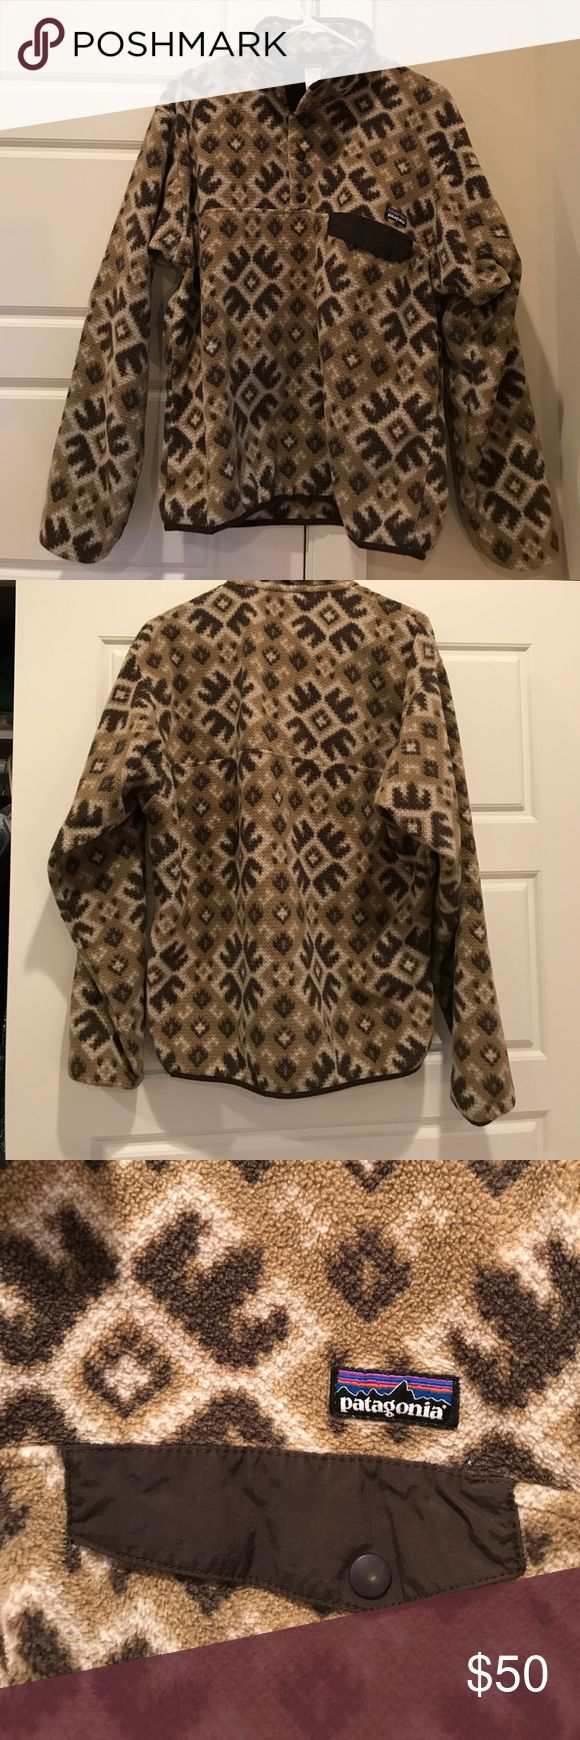 Retro Patagonia Synchilla Pullover Fleece Worn and washed a handful of times. Great Native American print. Cozy and warm no matter the season. Great to read with or go for a hike, all around useful. Patagonia Sweaters Zip Up